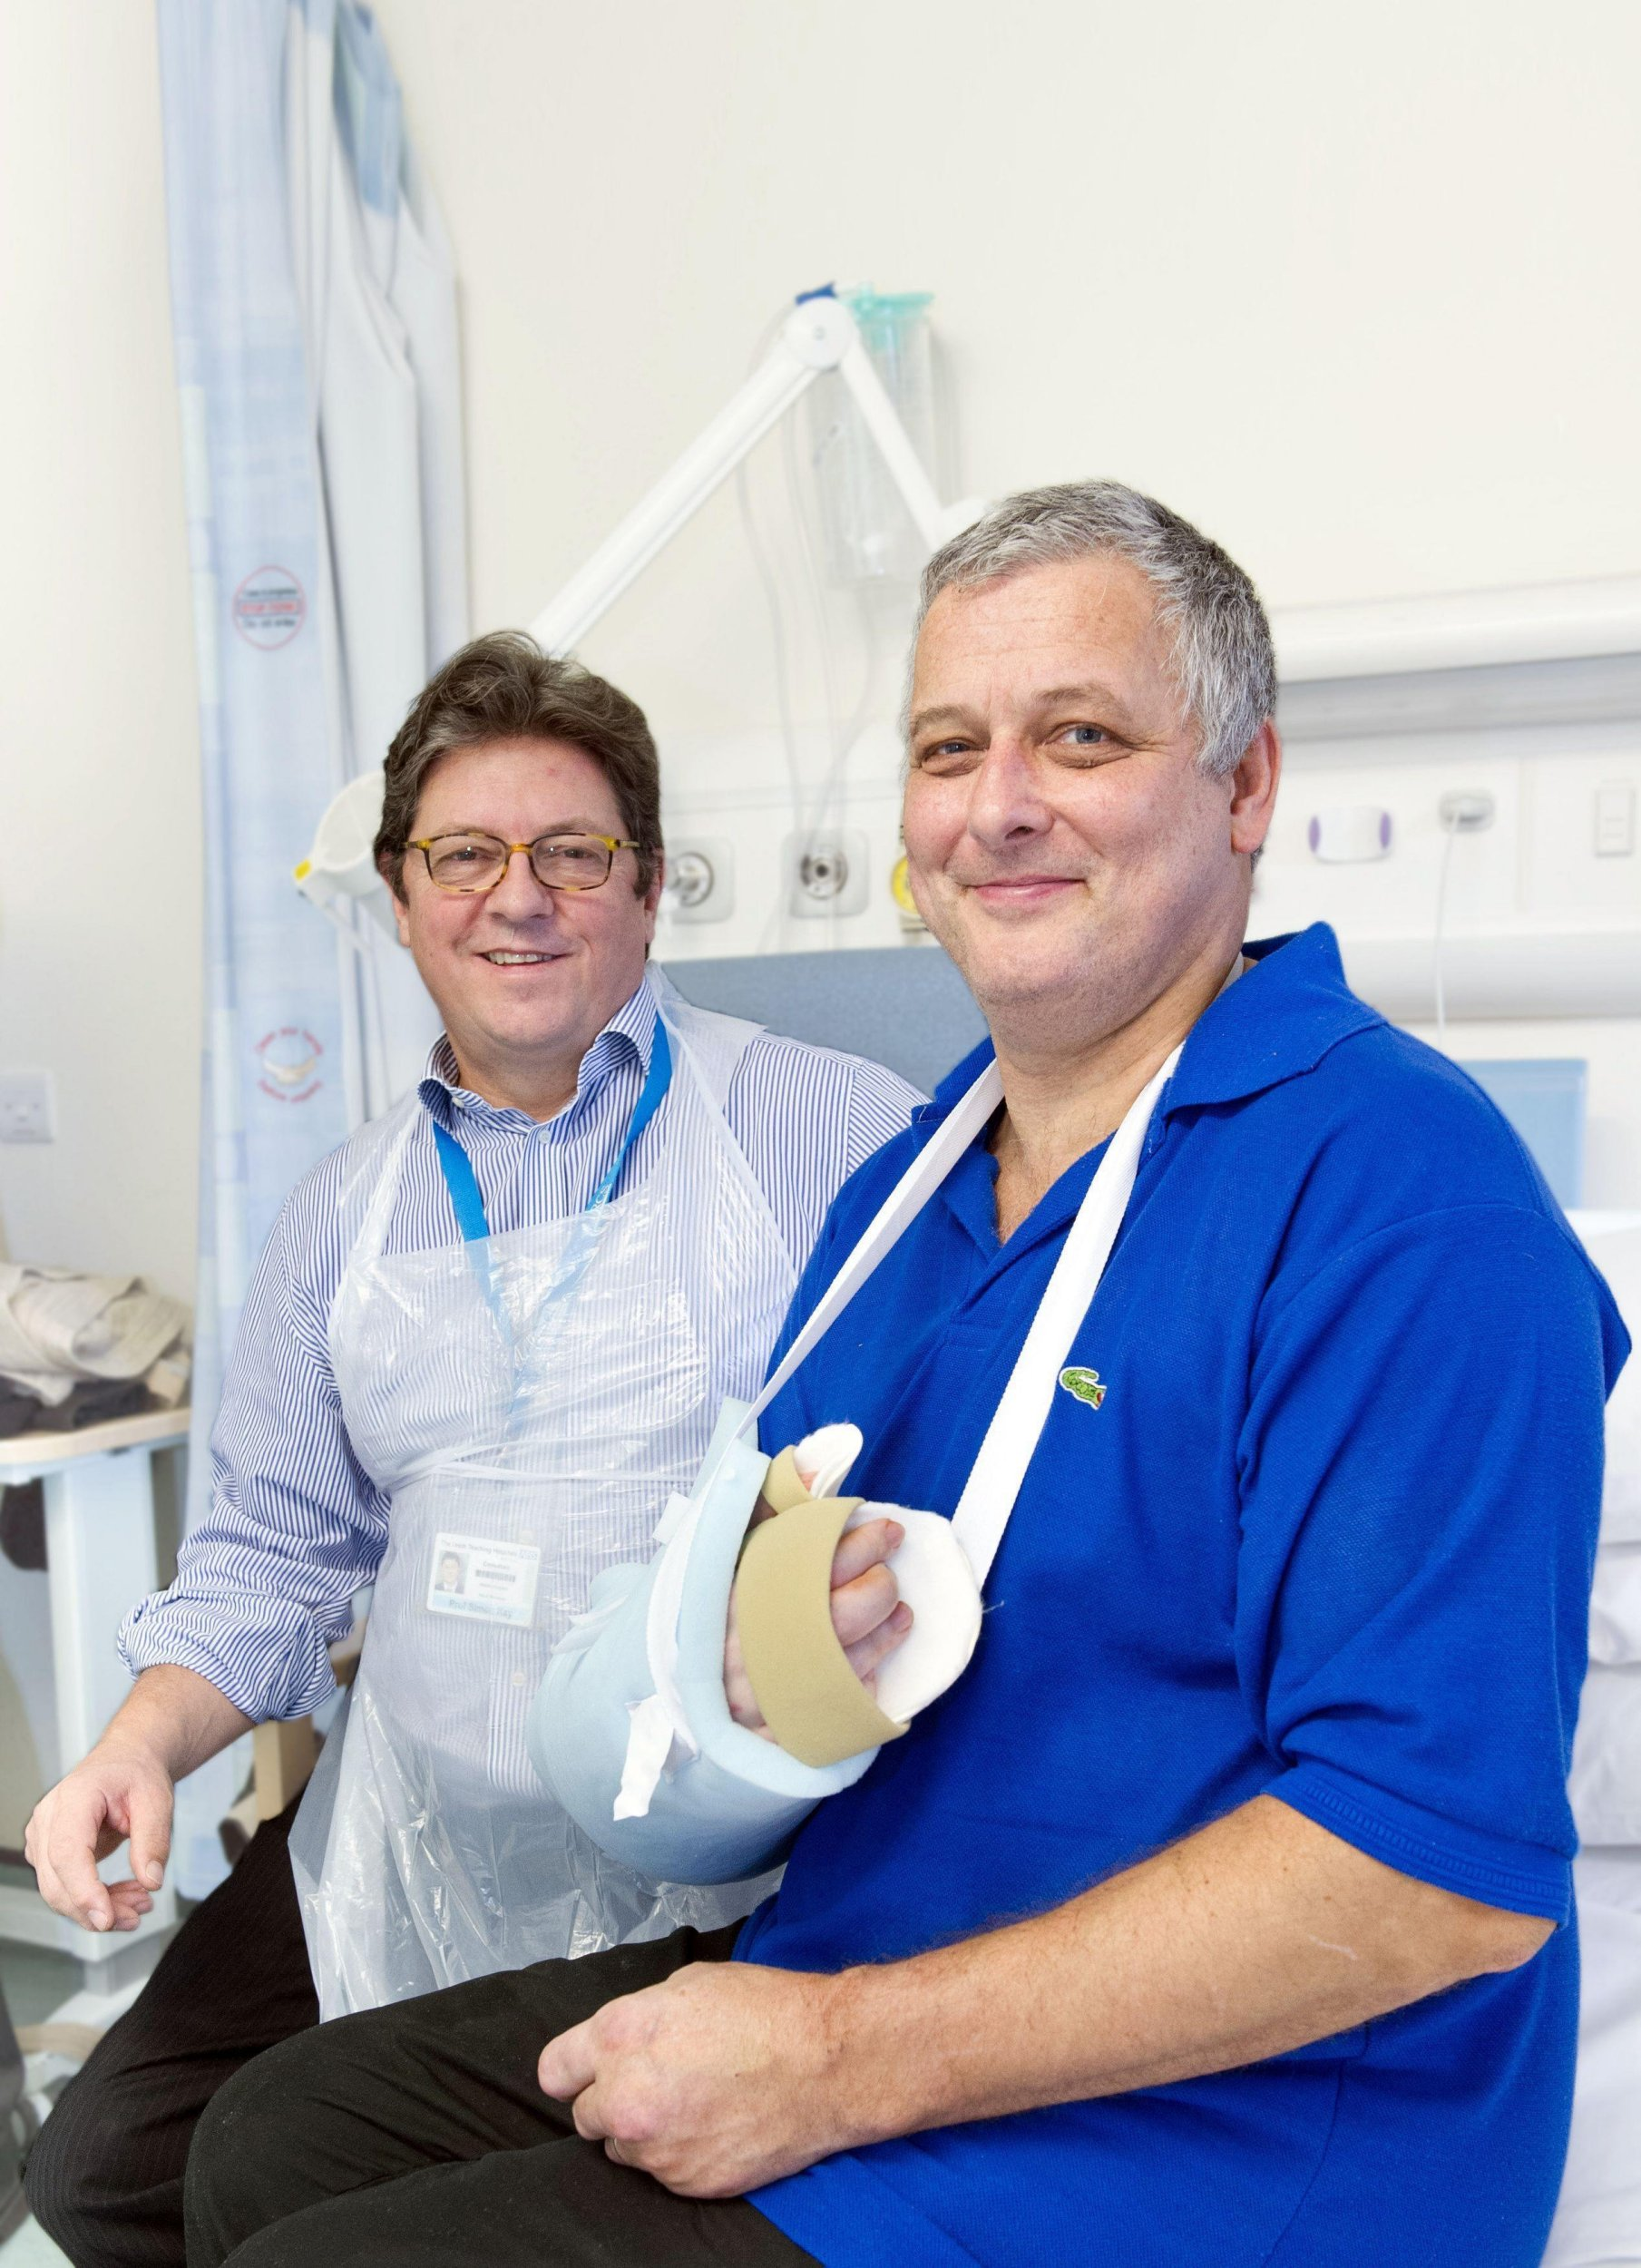 Undated handout file photo issued by Leeds General Infirmary of Professor Simon Kay (left) who operated on Mark Cahill when he became the first person in the UK to have a hand transplant, as the NHS is to fund the operation for patients in desperate need following injury or serious infection. PRESS ASSOCIATION Photo. Issue date: Friday January 29, 2016. A team in Leeds has been given the go-ahead to run the NHS programme and recruit patients who have suffered injury, an accident or sepsis. See PA story HEALTH Hands. Photo credit should read: Leeds General Infirmary/PA Wire NOTE TO EDITORS: This handout photo may only be used in for editorial reporting purposes for the contemporaneous illustration of events, things or the people in the image or facts mentioned in the caption. Reuse of the picture may require further permission from the copyright holder.